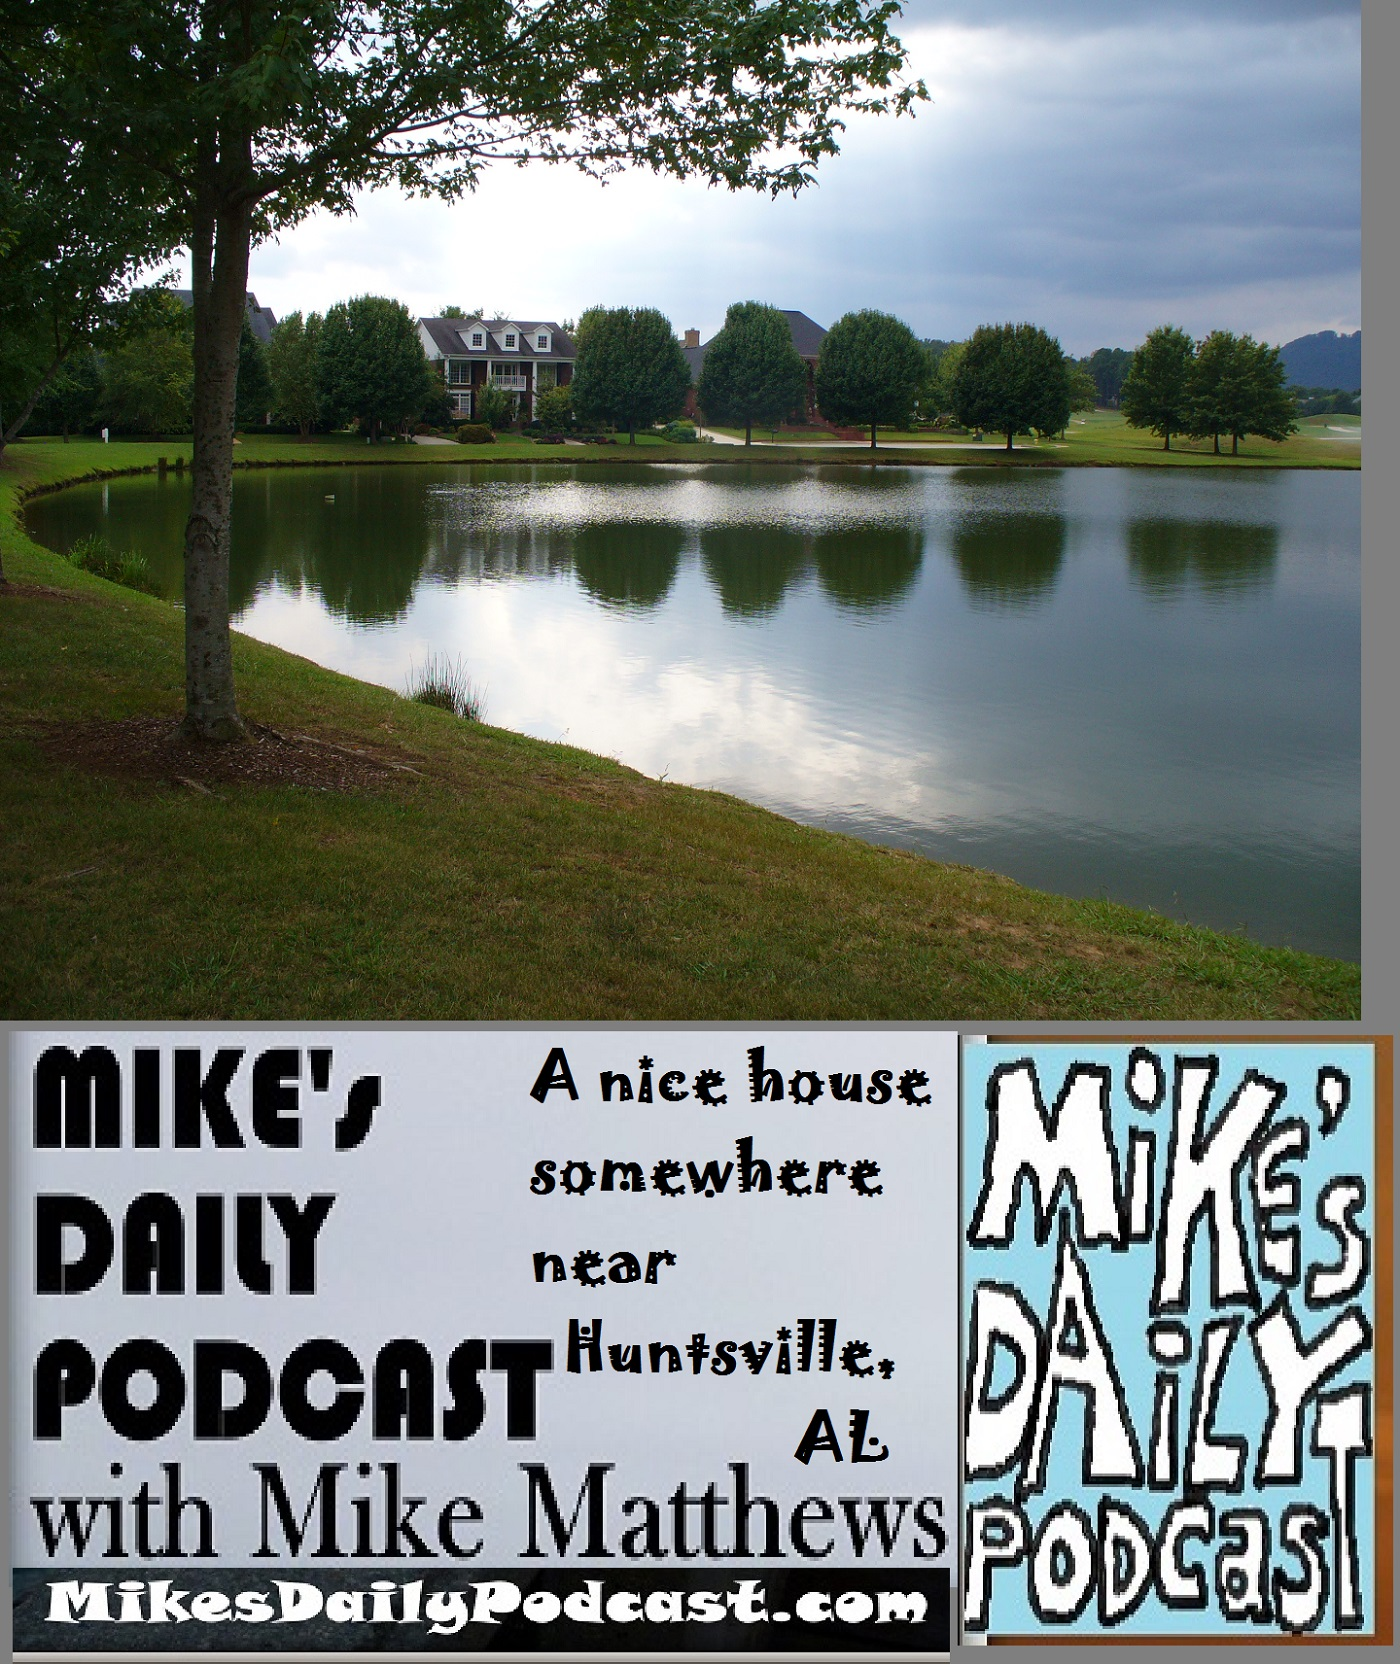 MIKEs DAILY PODCAST 1041 Huntsville Alabama house